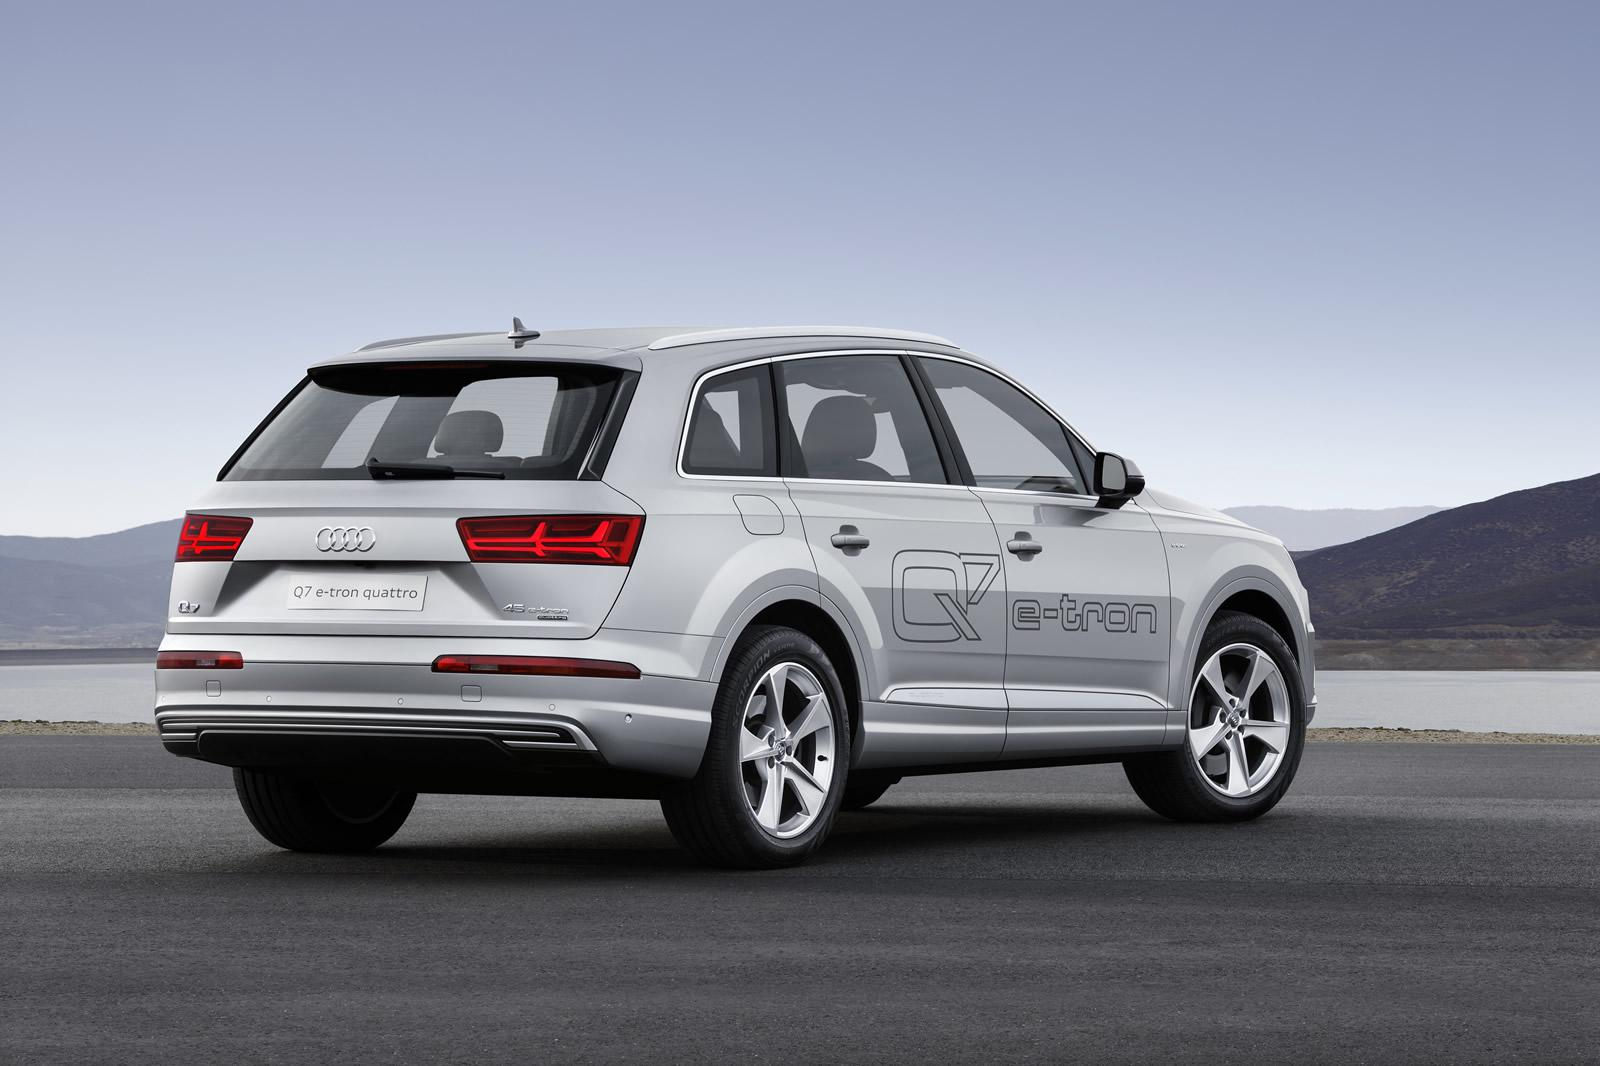 new audi q7 e tron 2 0 tfsi quattro is the first of its kind targets china and japan. Black Bedroom Furniture Sets. Home Design Ideas